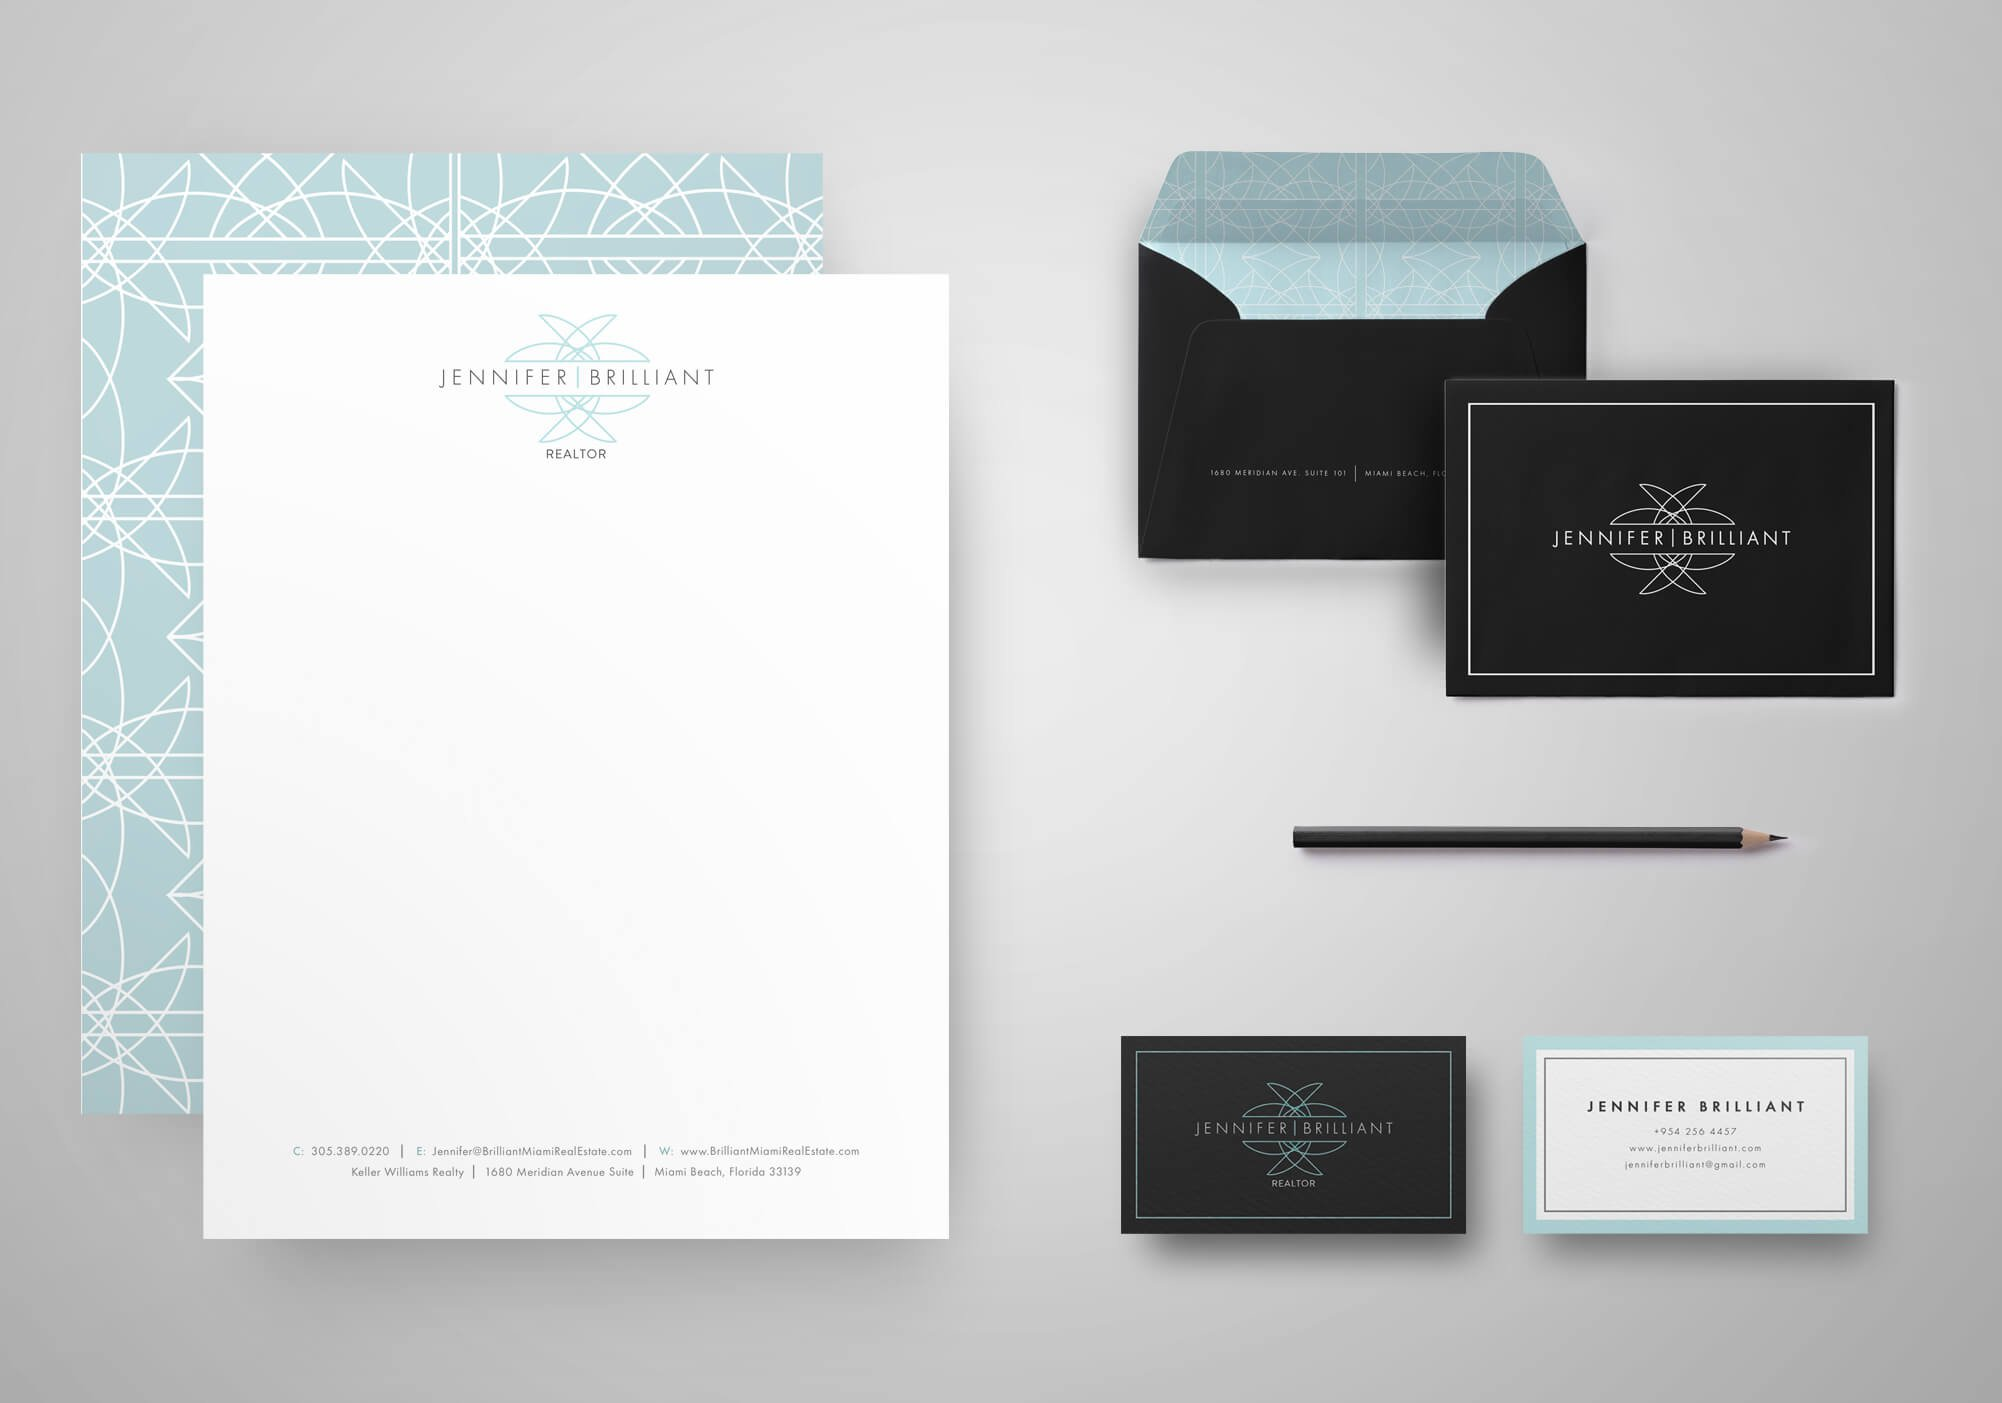 Jacober Creative stationery design for Realtor Jennifer Brilliant